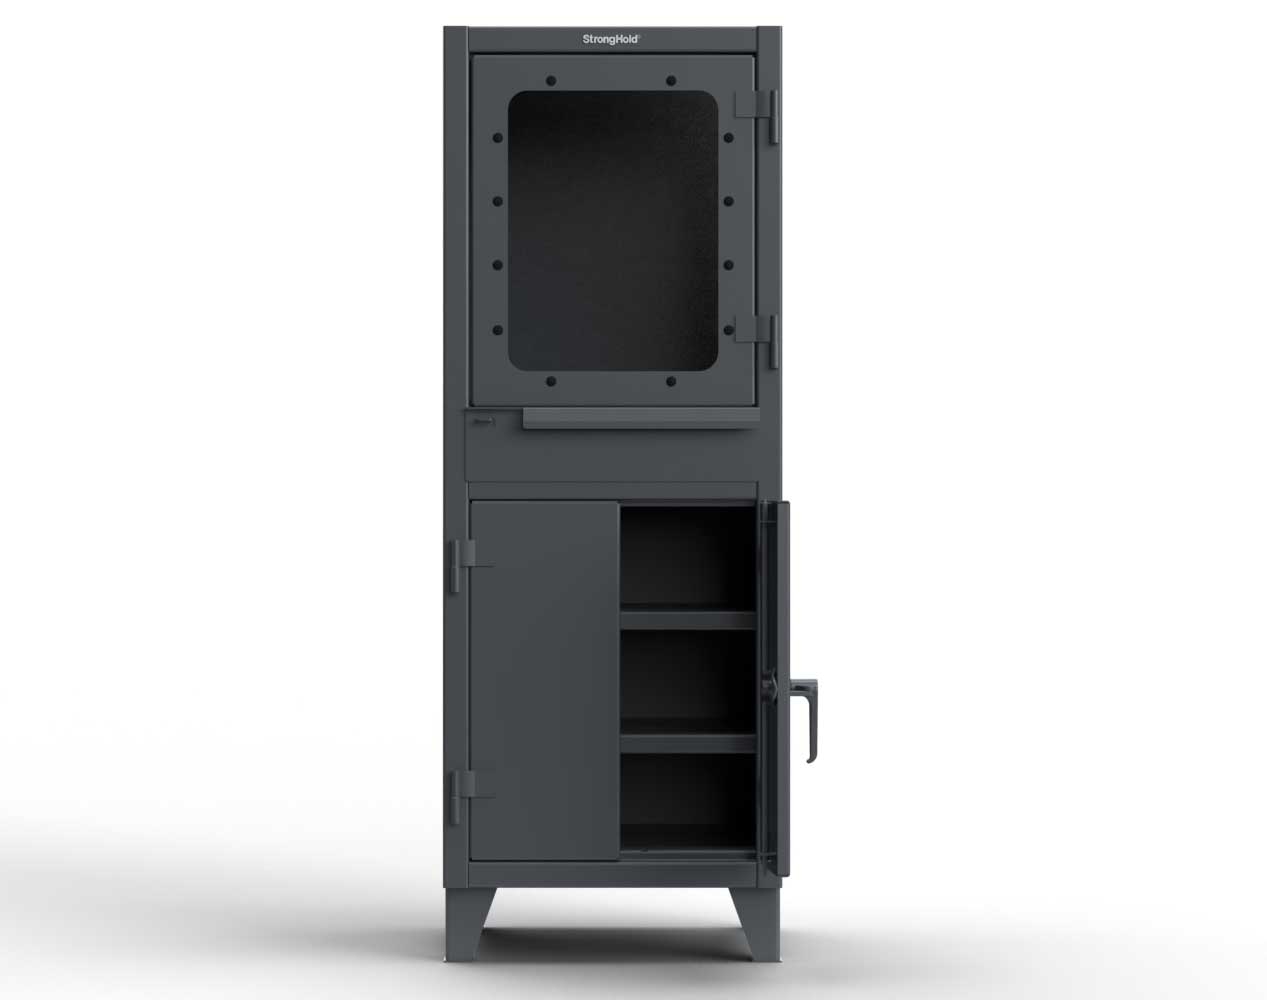 Extra Heavy Duty 12 GA Computer Cabinet with Retractable Keyboard, 2 Shelves – 26 In. W x 24 In. D x 72 In. H